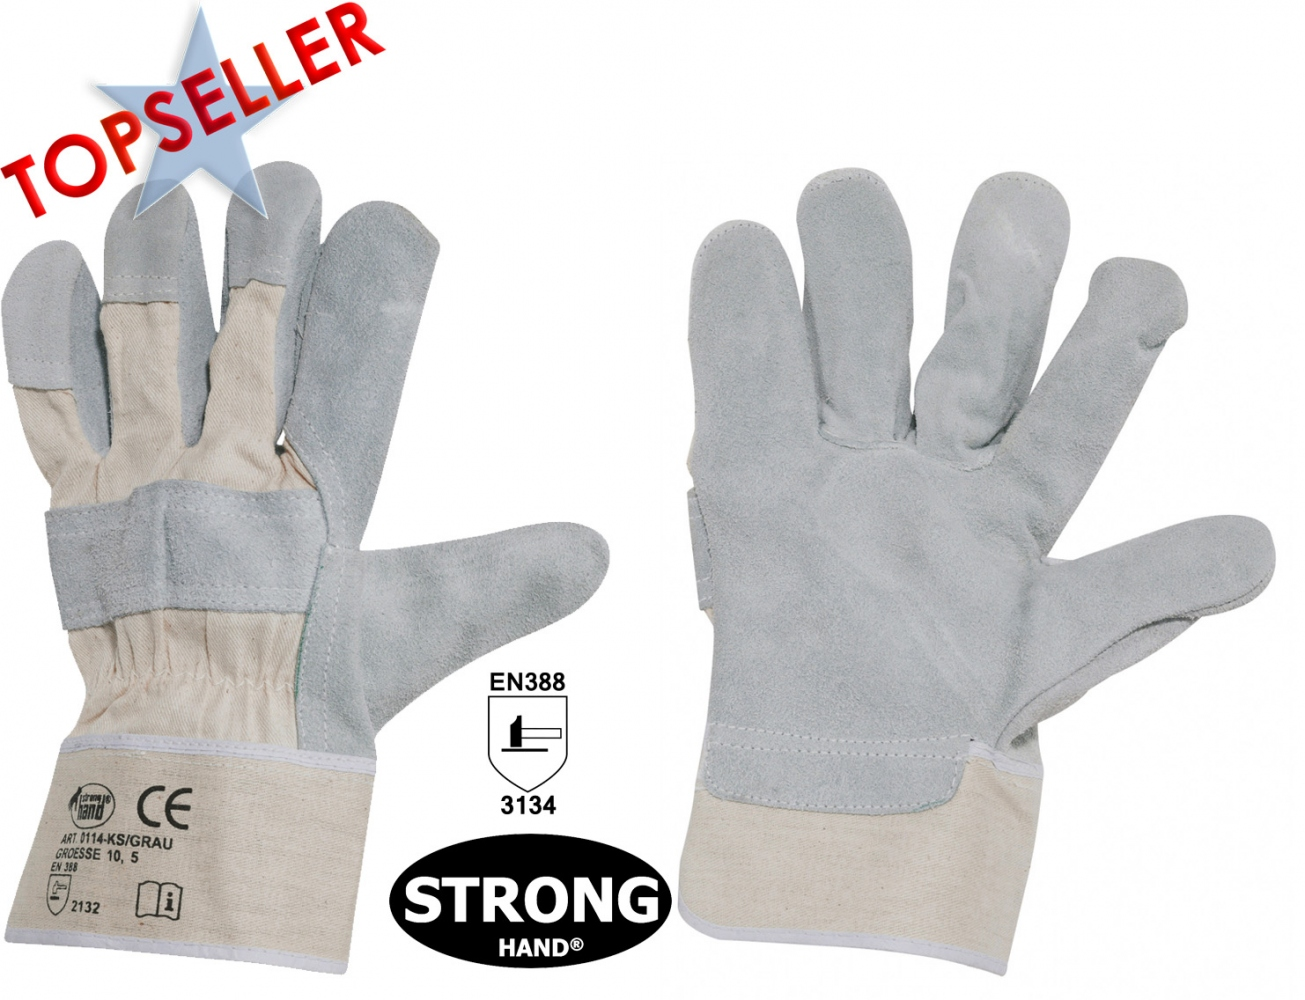 pics/Feldtmann 2016/E.I.S. Topseller/stronghand-0115-ks-safety-rigger-chrome-leather-gloves-topseller.jpg